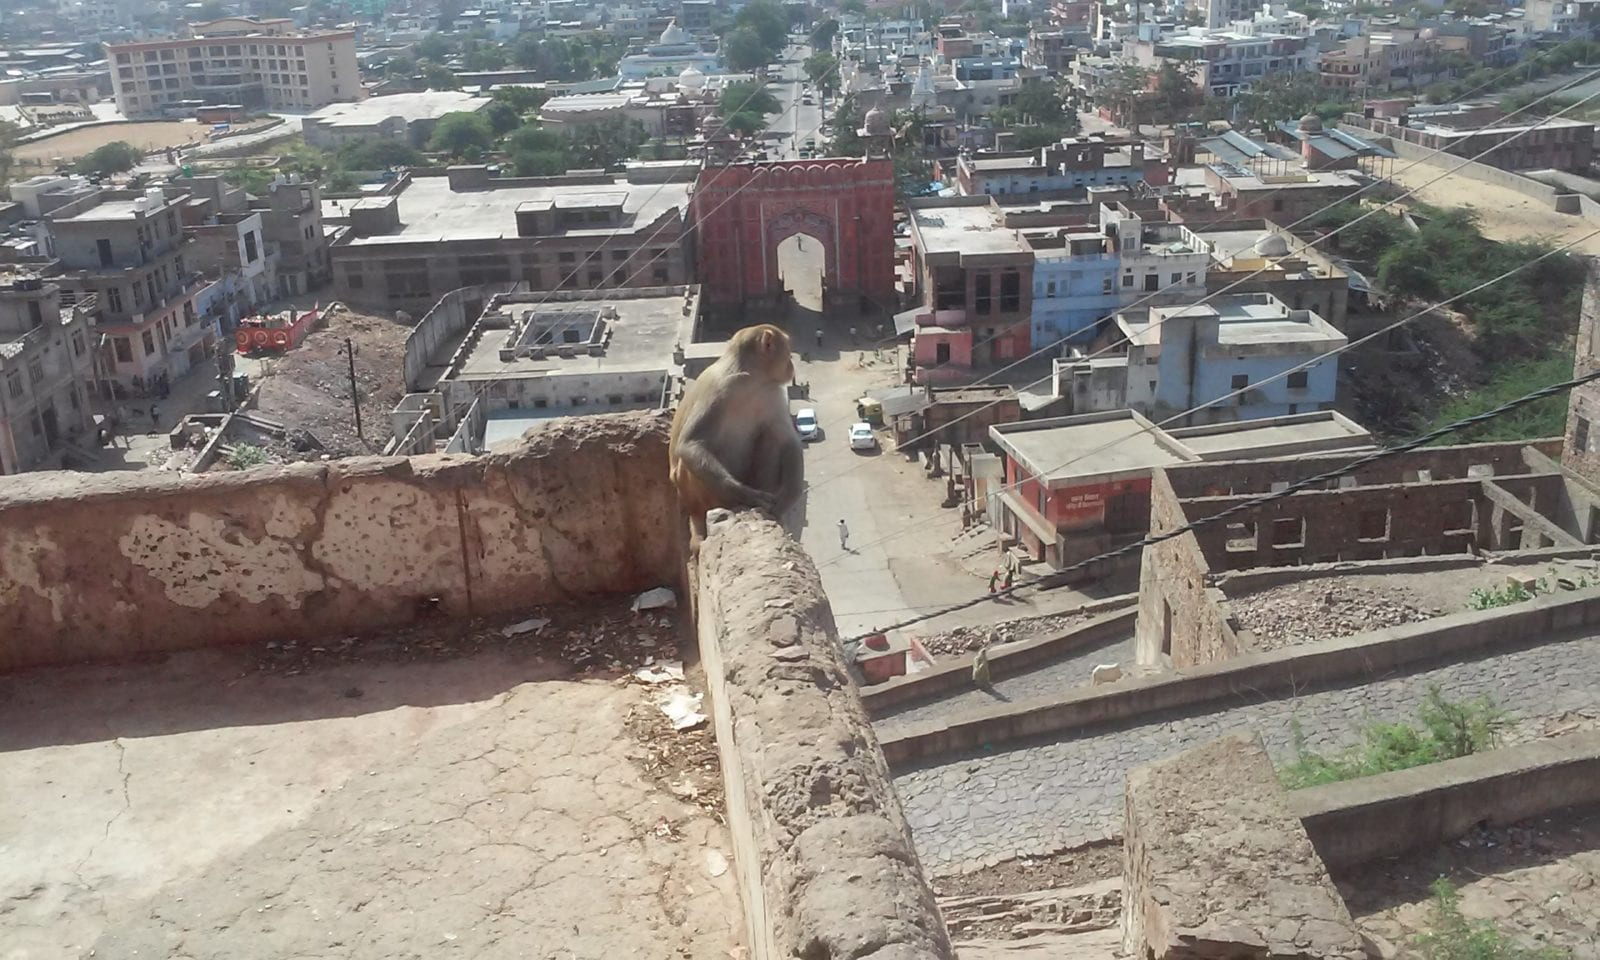 Backpacking in Rajasthan